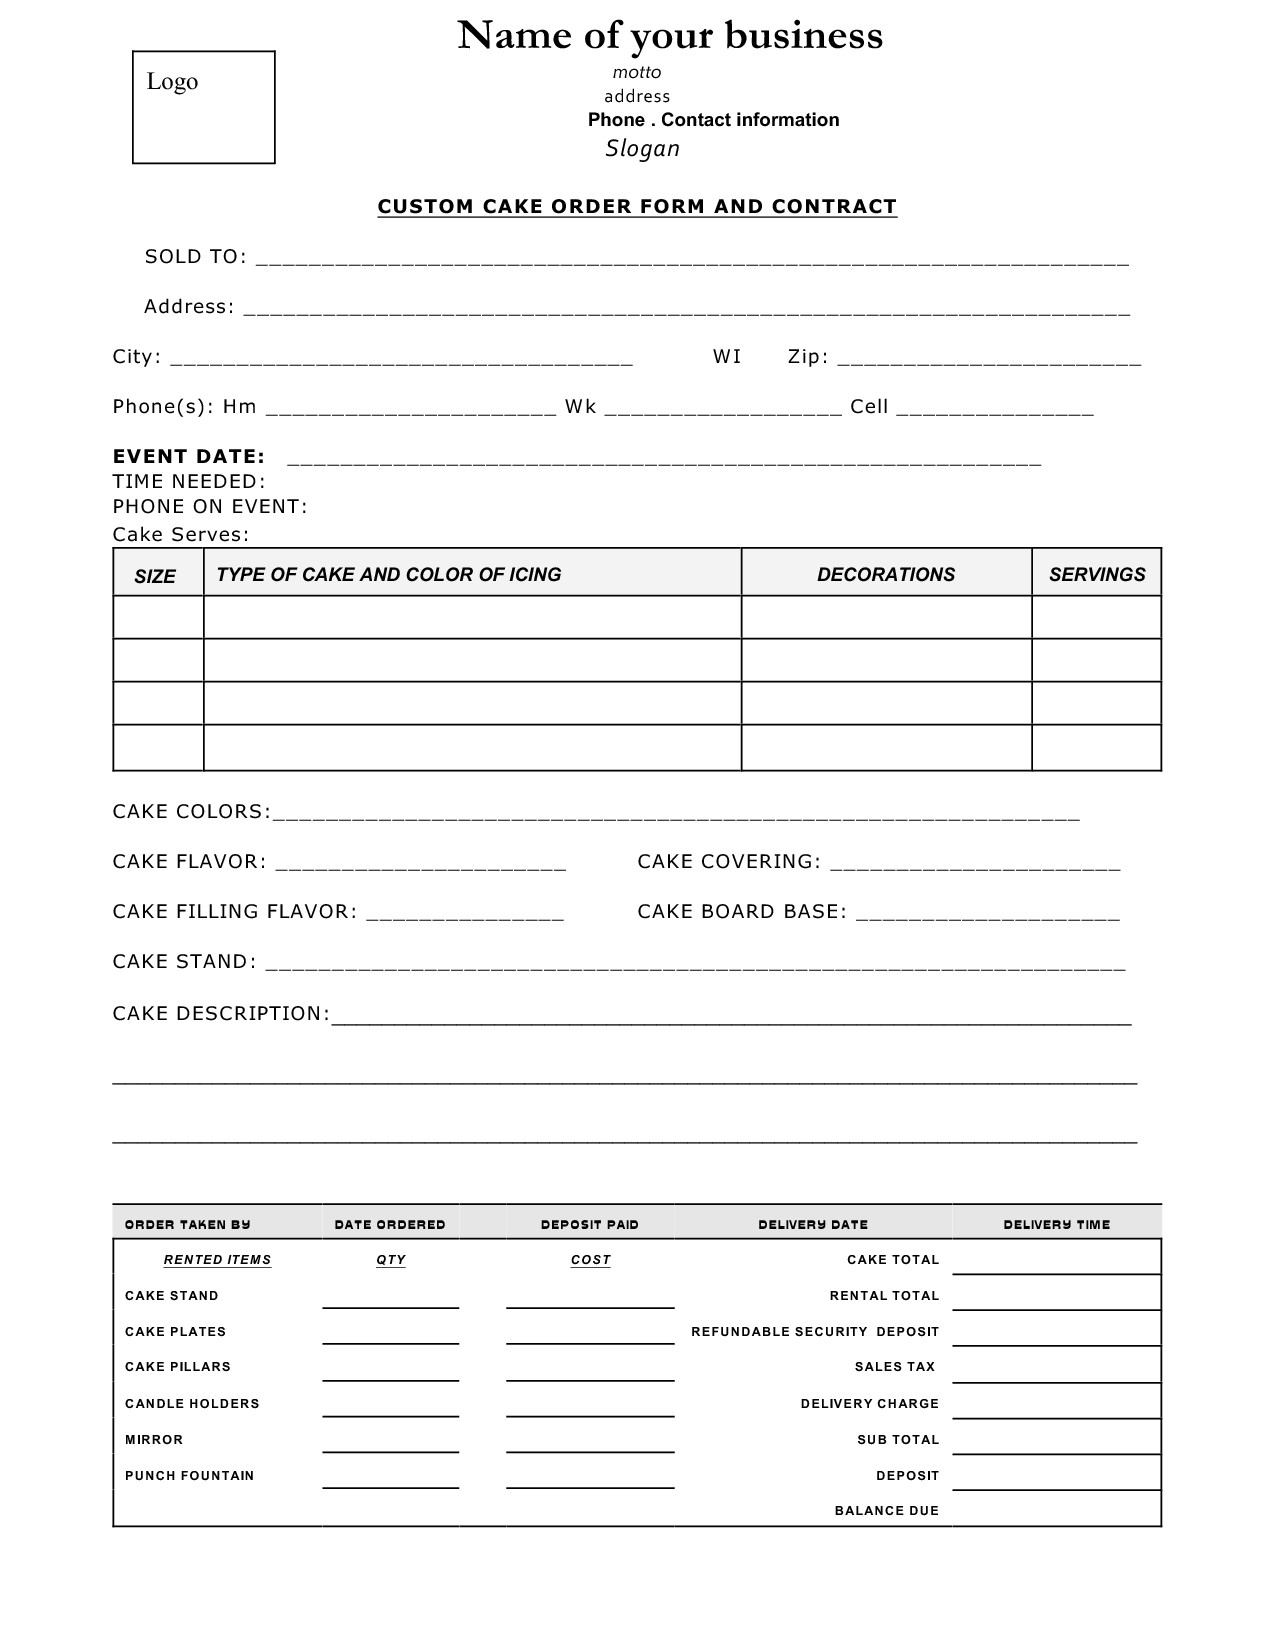 Free Cake Contract Template Cake Contract Sample Cakepins